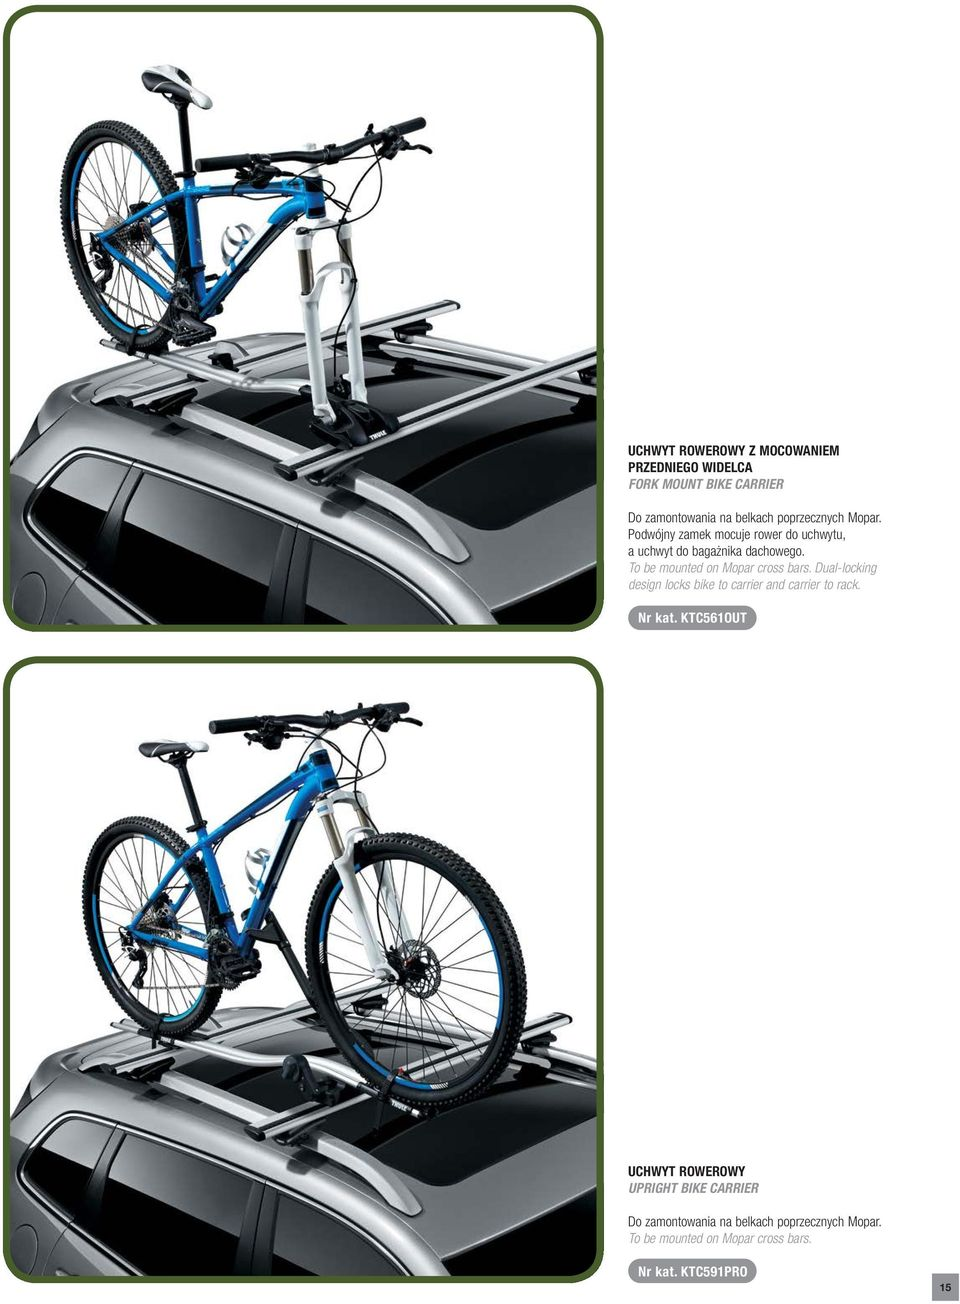 To be mounted on Mopar cross bars. Dual-locking design locks bike to carrier and carrier to rack. Nr kat.